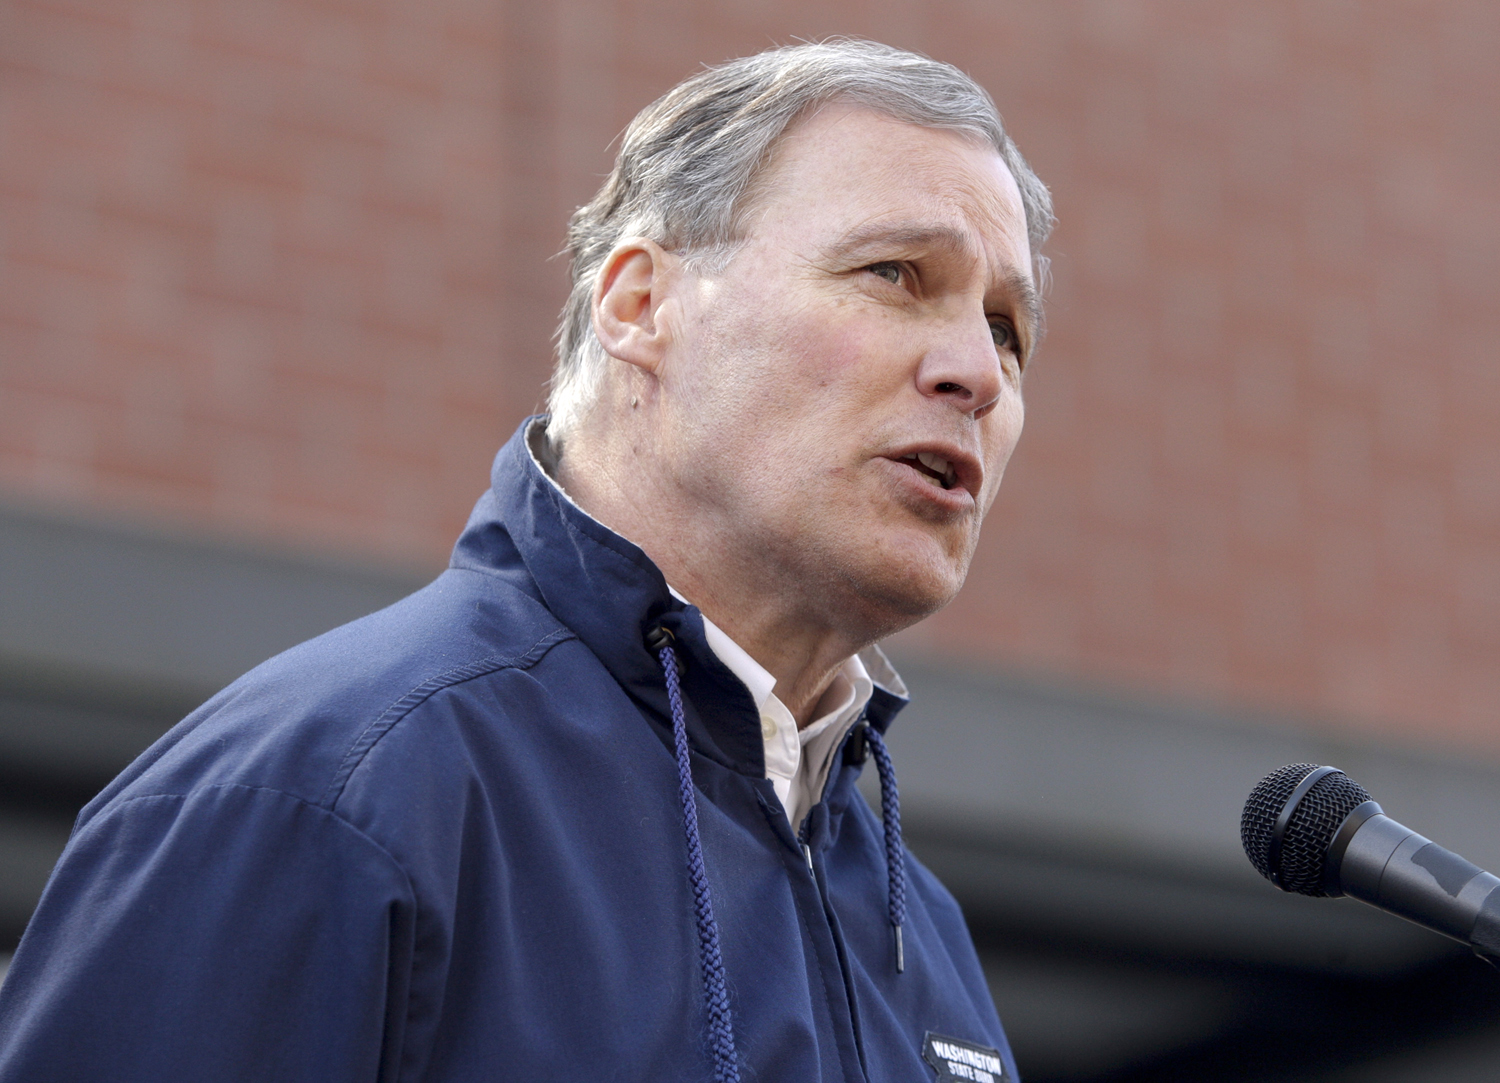 Washington Governor Jay Inslee wrote President Barack Obama on Tuesday to ask for more federal assistance for his disaster struck state. Jason Redmund—Reuters